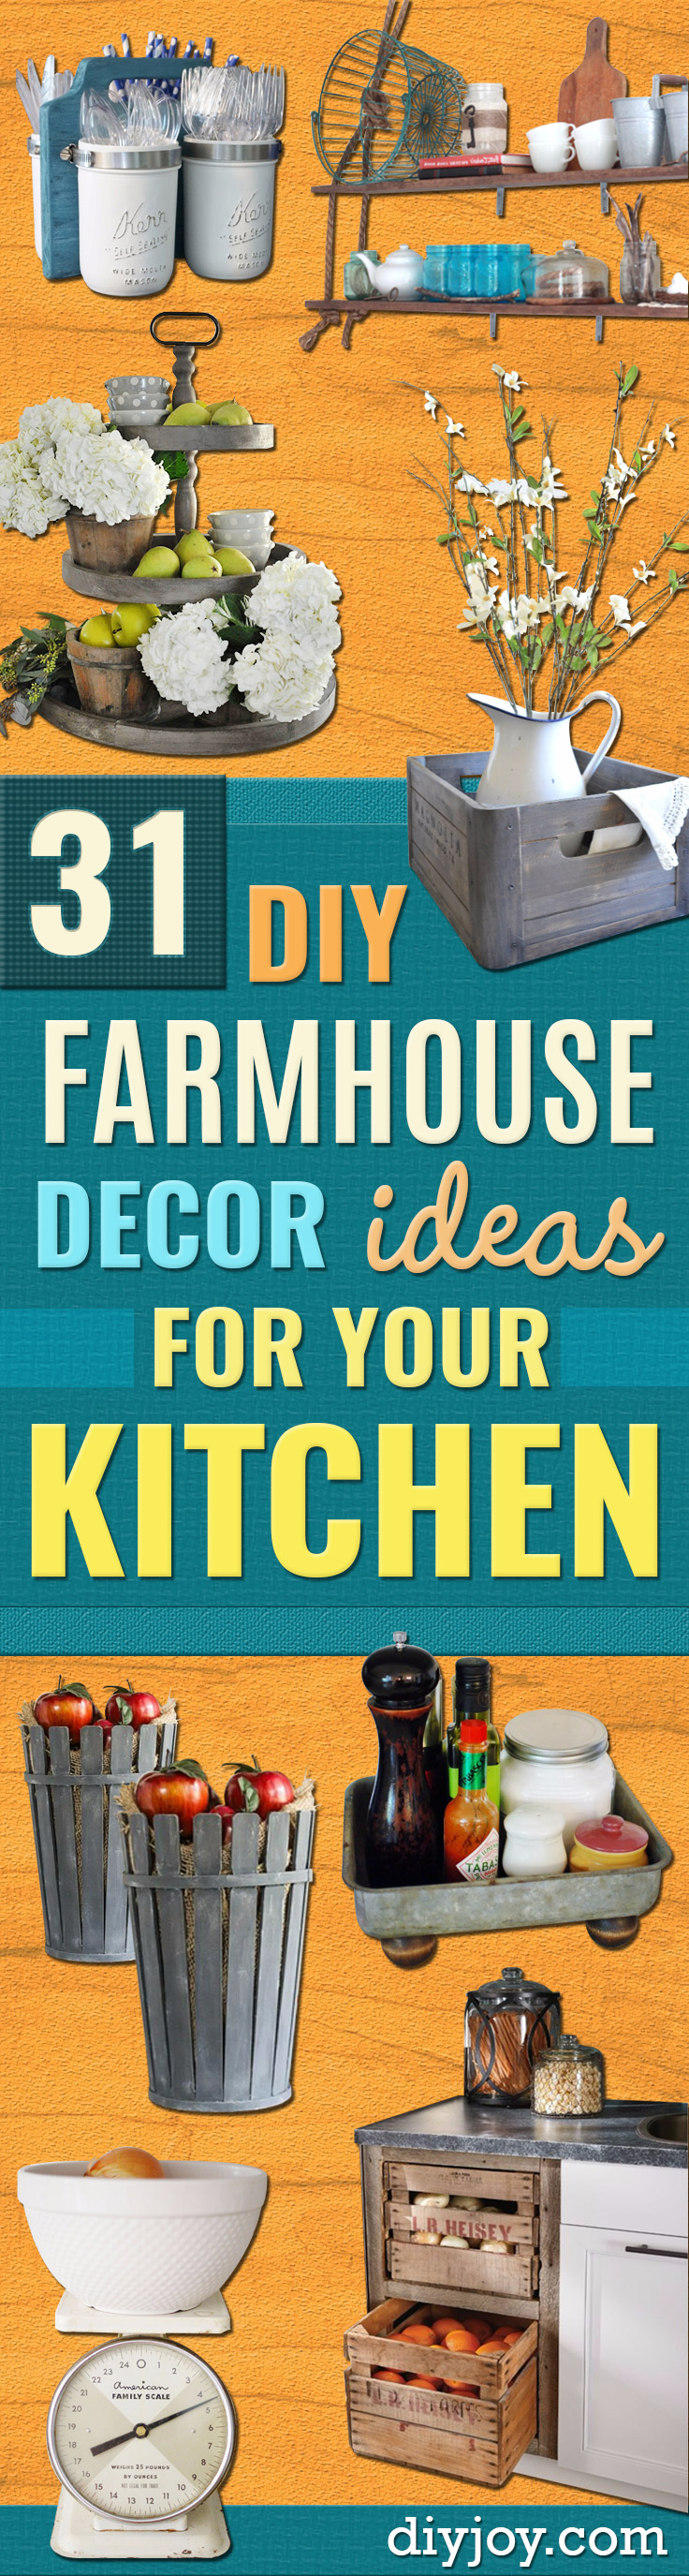 DIY Farmhouse Style Decor Ideas for the Kitchen - Rustic Farm House Crafts Ideas and DIY Furniture Projects for Home Decor- Wall Art, Rugs, Countertops, Lights